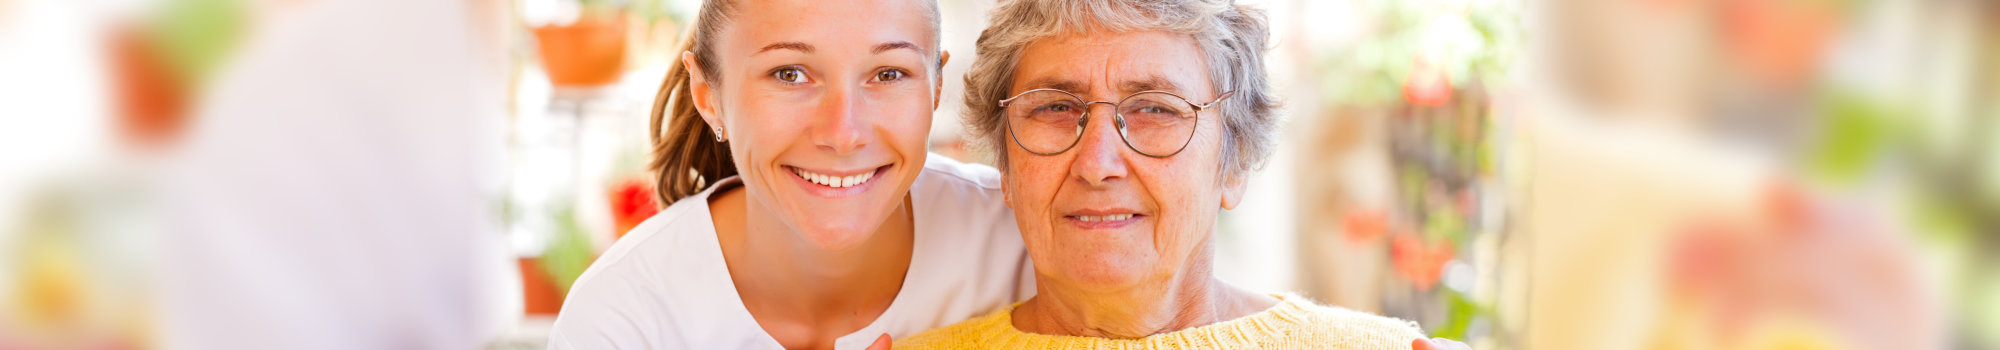 young woman and elderly woman smiling